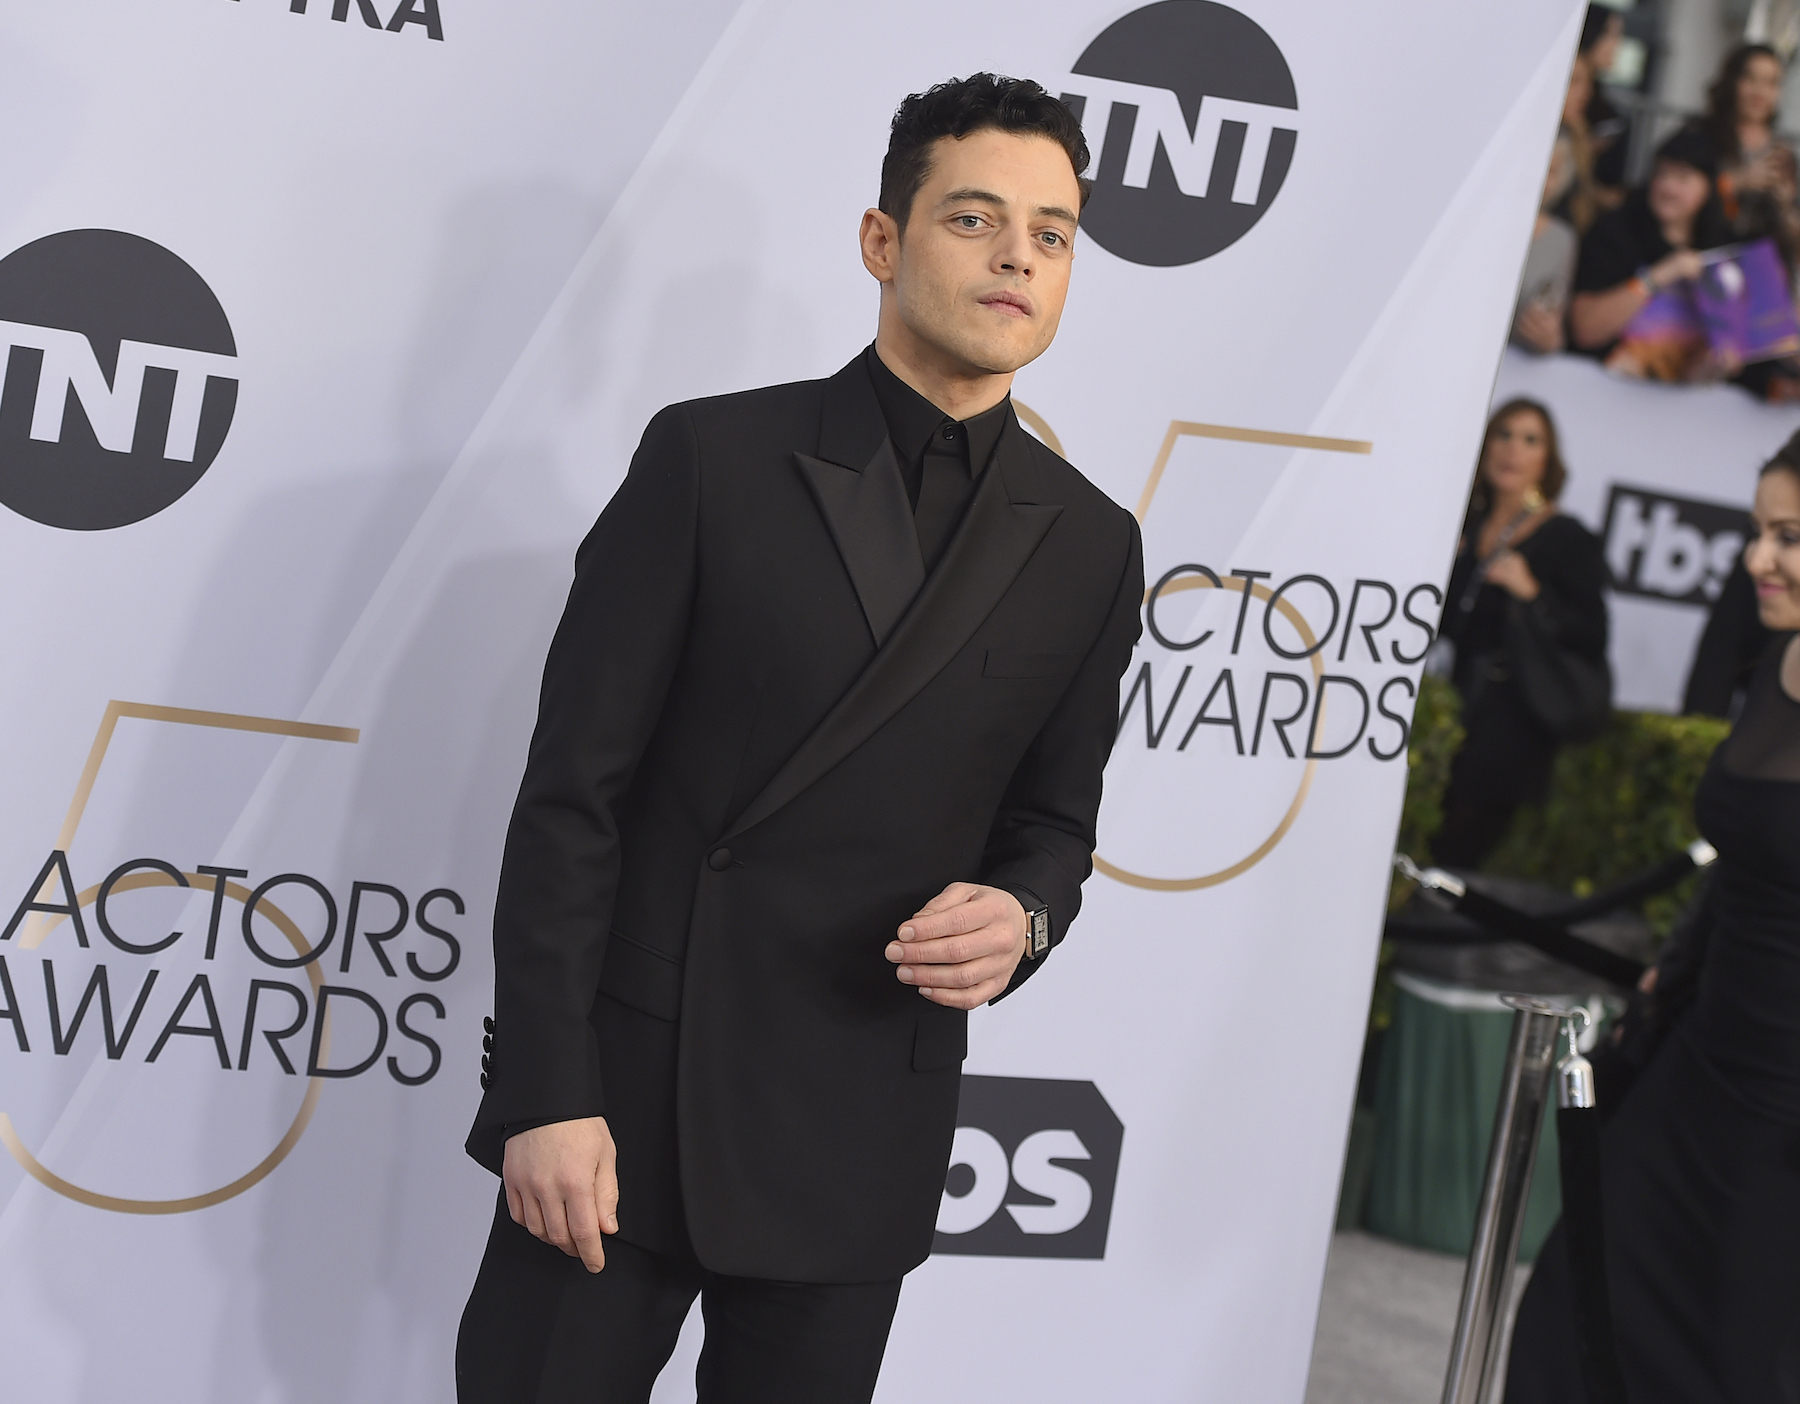 "<div class=""meta image-caption""><div class=""origin-logo origin-image ap""><span>AP</span></div><span class=""caption-text"">Rami Malek arrives at the 25th annual Screen Actors Guild Awards at the Shrine Auditorium & Expo Hall on Sunday, Jan. 27, 2019, in Los Angeles. /AP) (Jordan Strauss/Invision/AP)</span></div>"